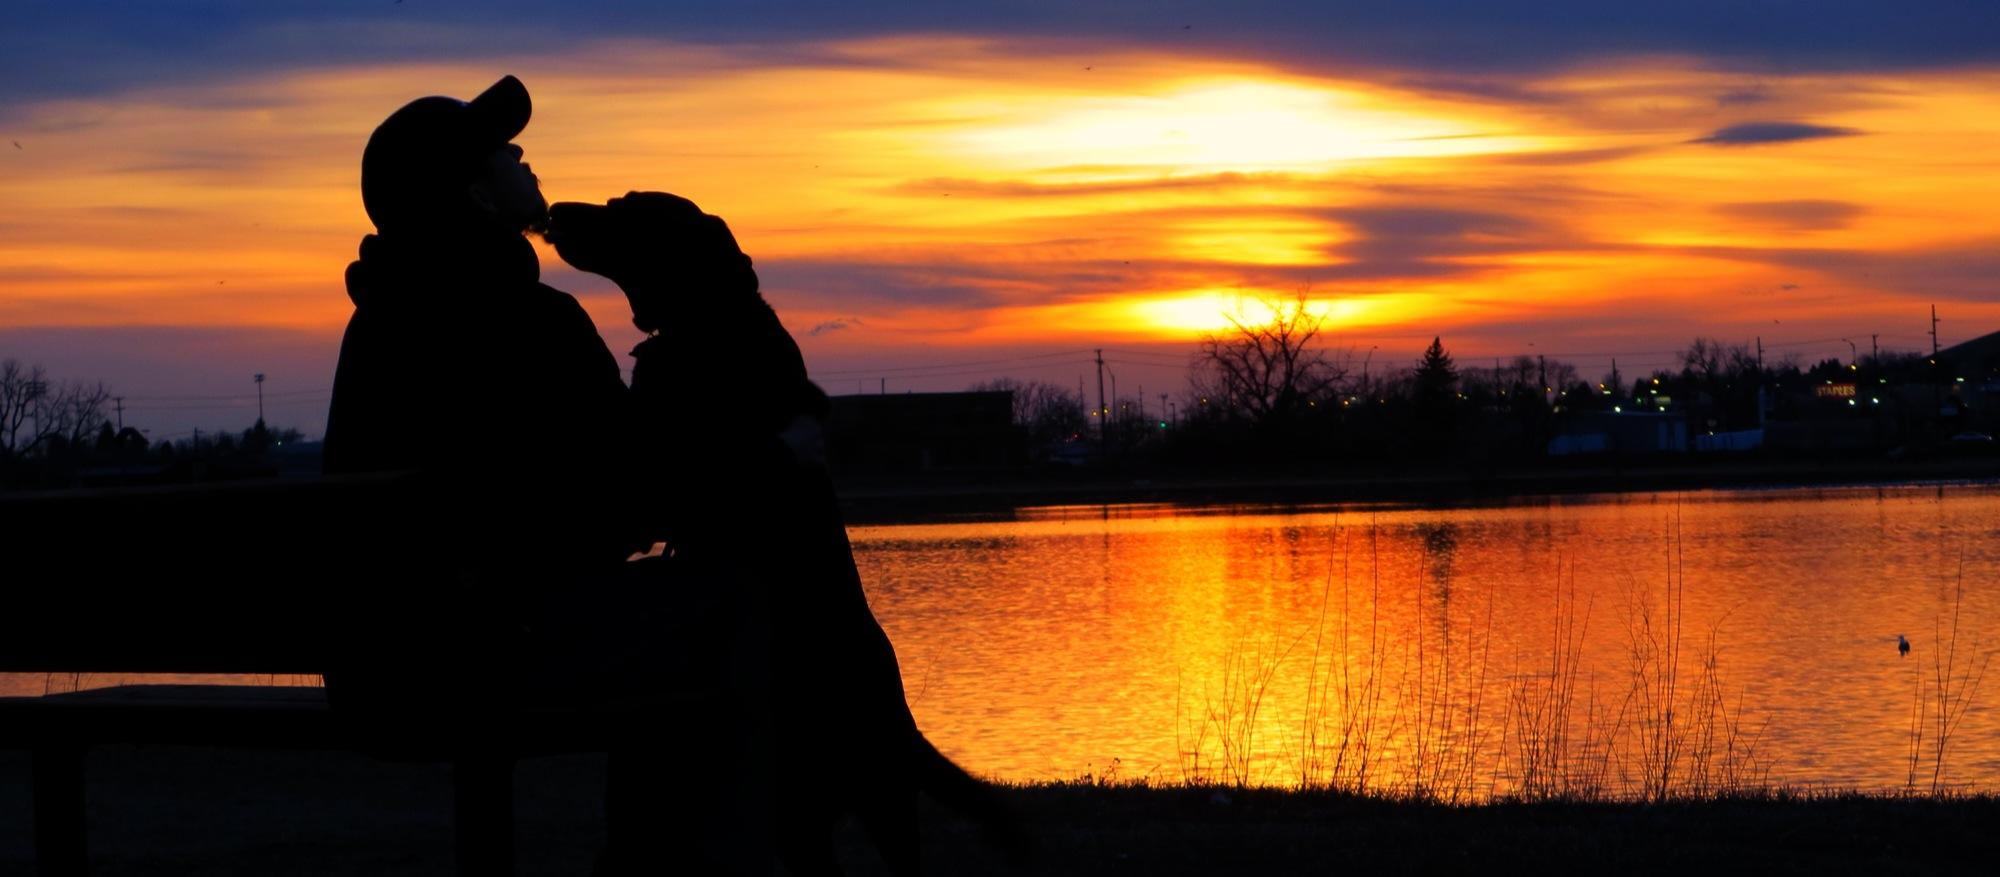 Ed and his dog Hallie at sunset